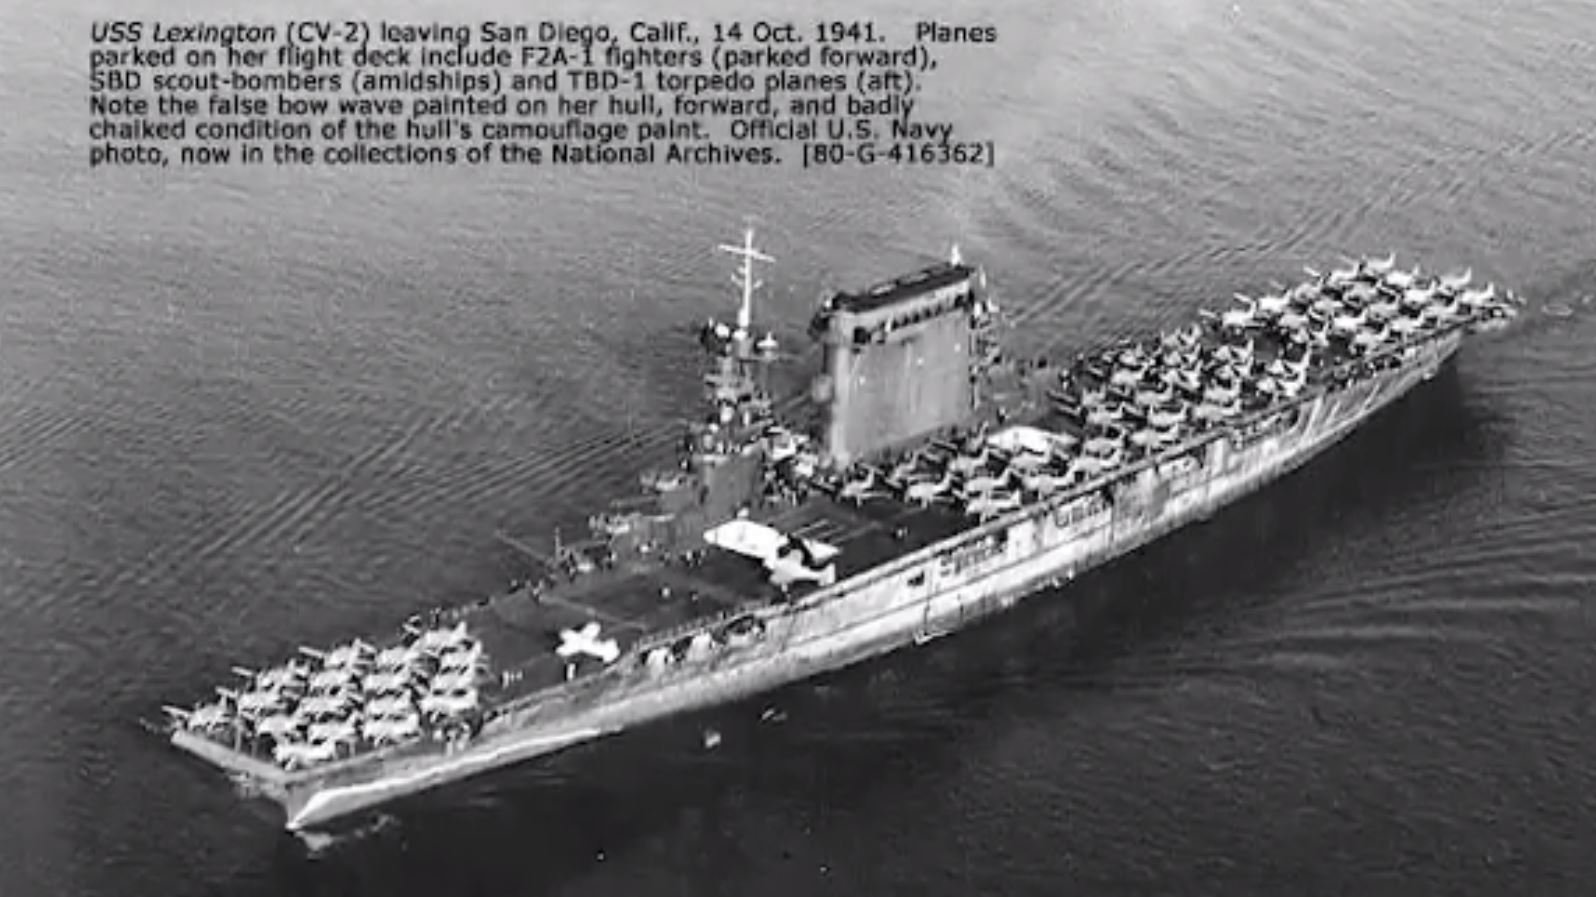 The USS Lexington was sunk by the Japanese in the Battle of the Coral Sea in May 1942. (Source: CNN/U.S. Navy)